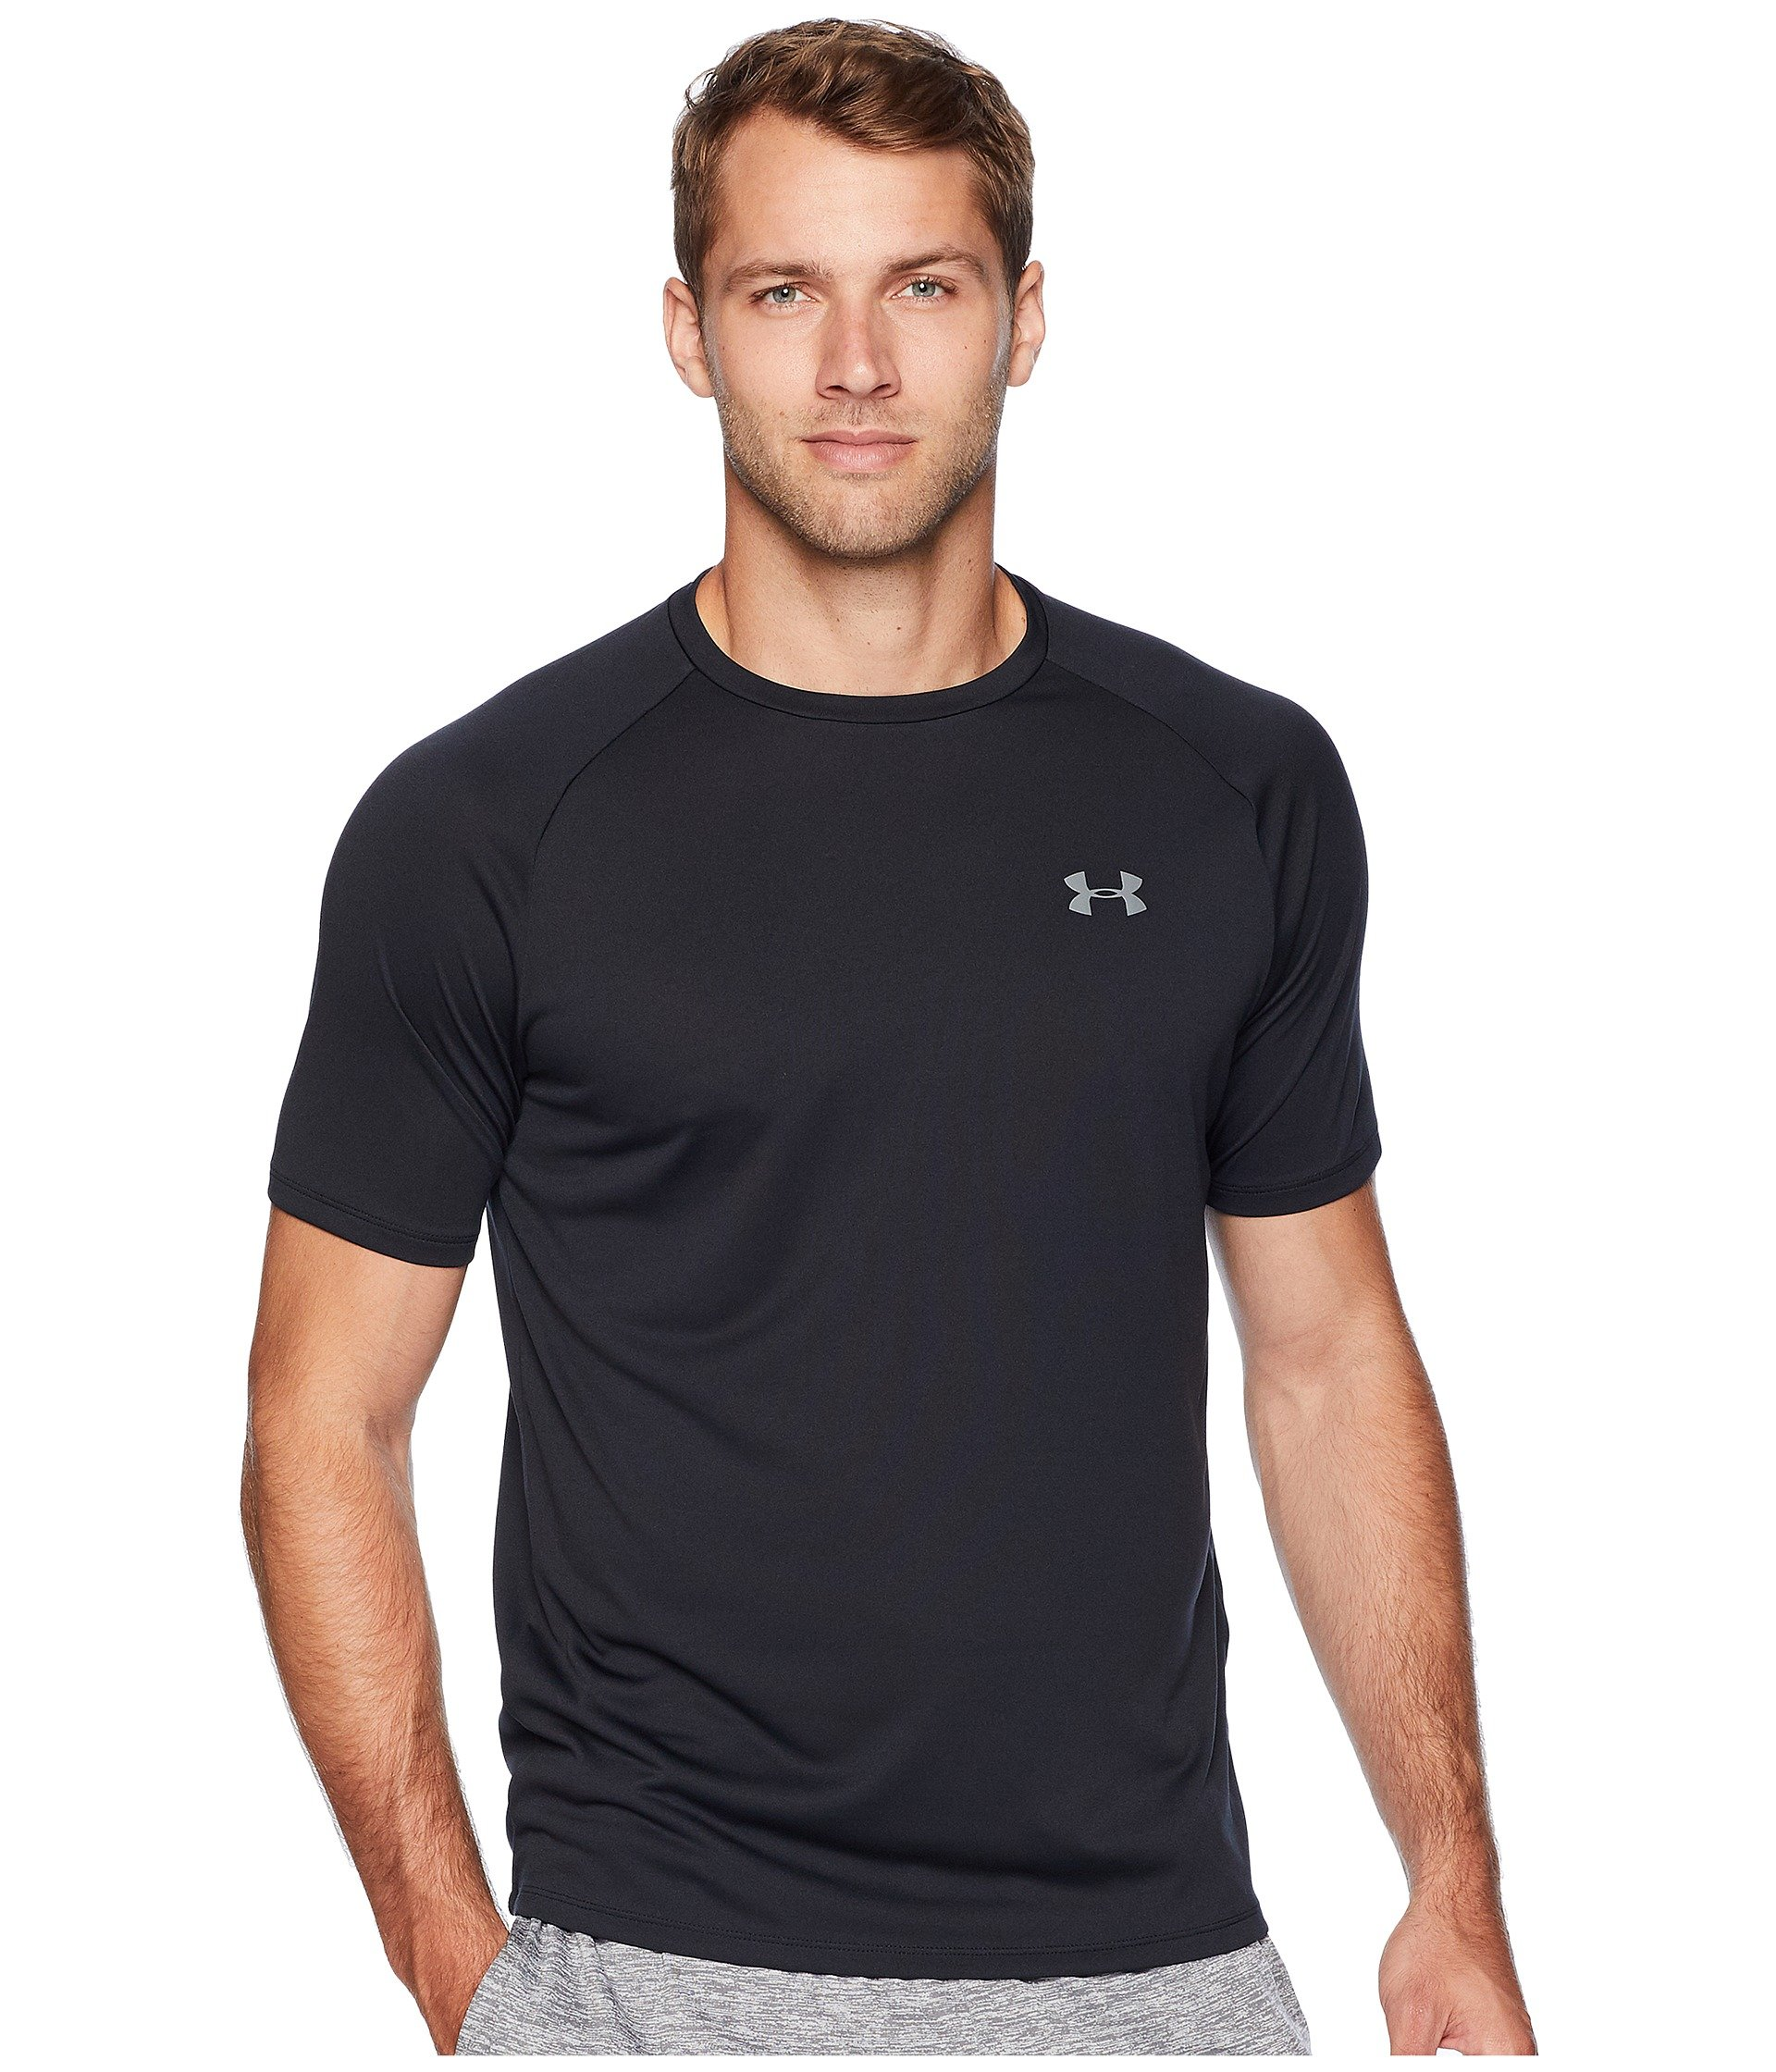 Under Armour Men's UA Tech Short Sleeve Tee Black/Graphite 4XT by Under Armour